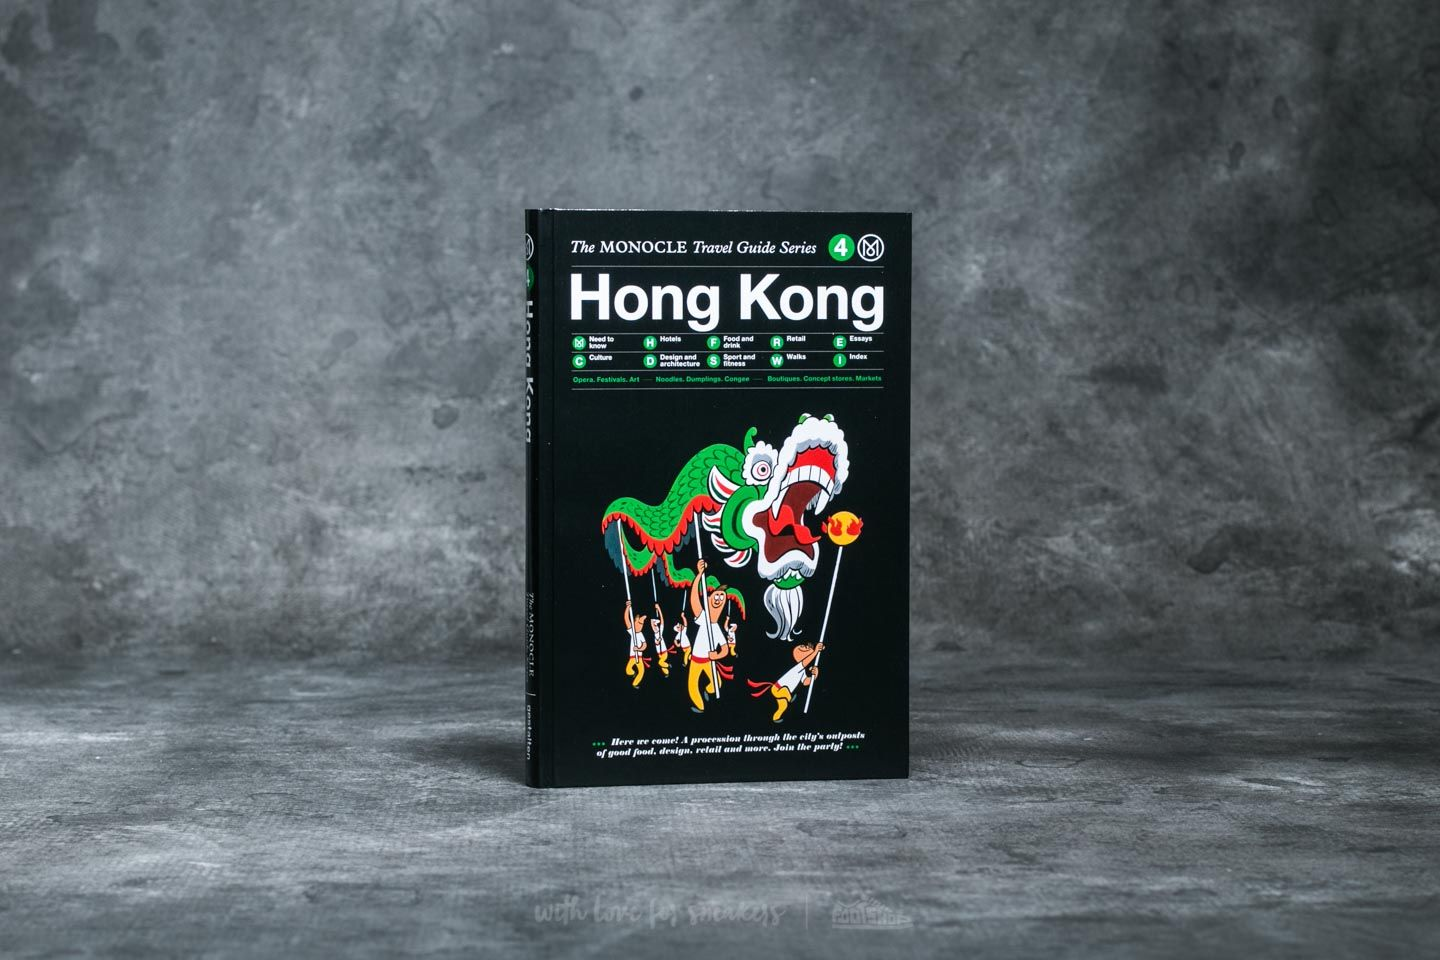 Publications Monocle Hong Kong Travel Guide